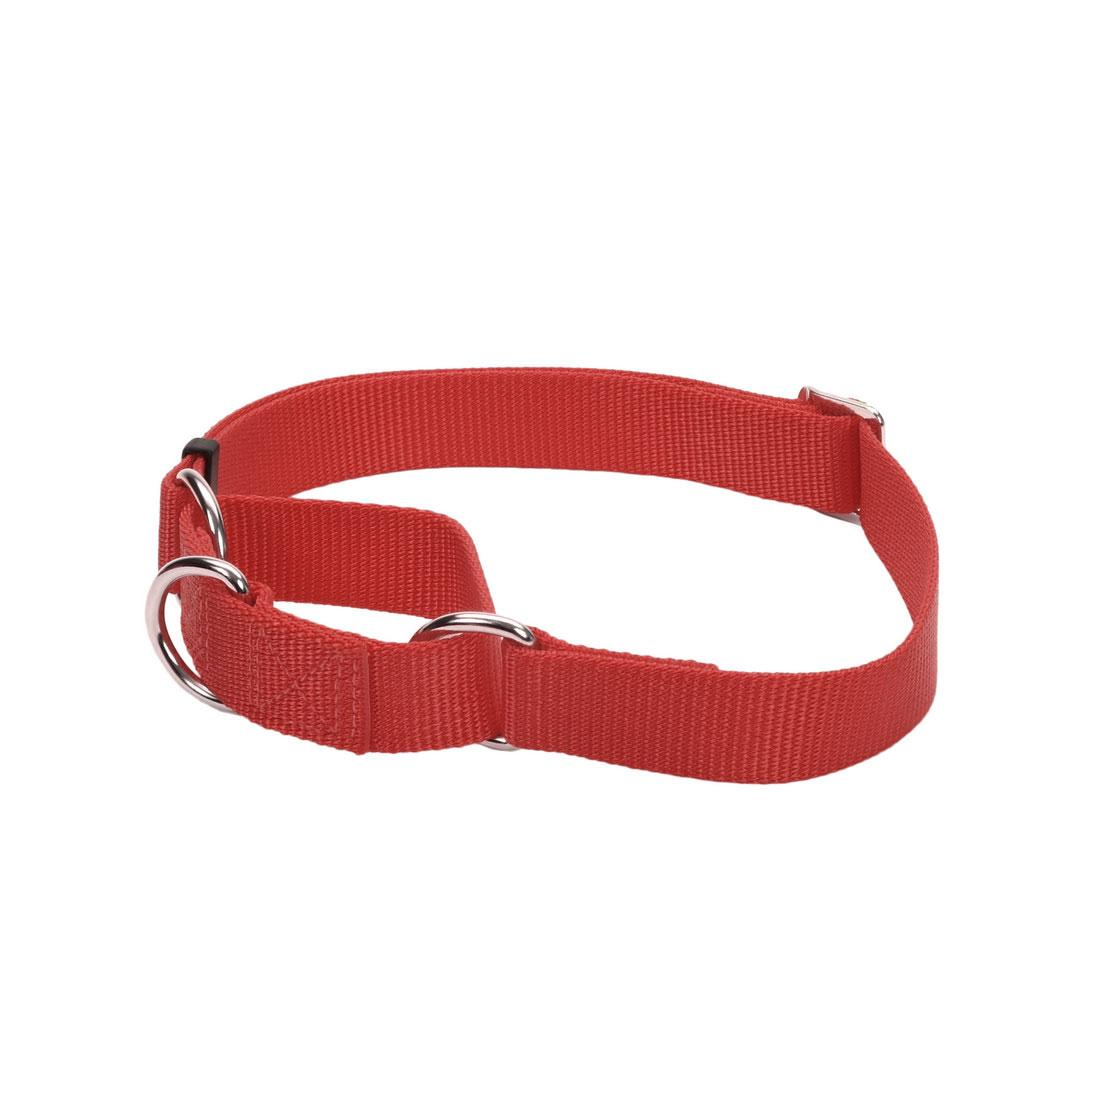 No! Slip Martingale Adjustable Dog Collar, Red, 5/8-in x 10-14-in